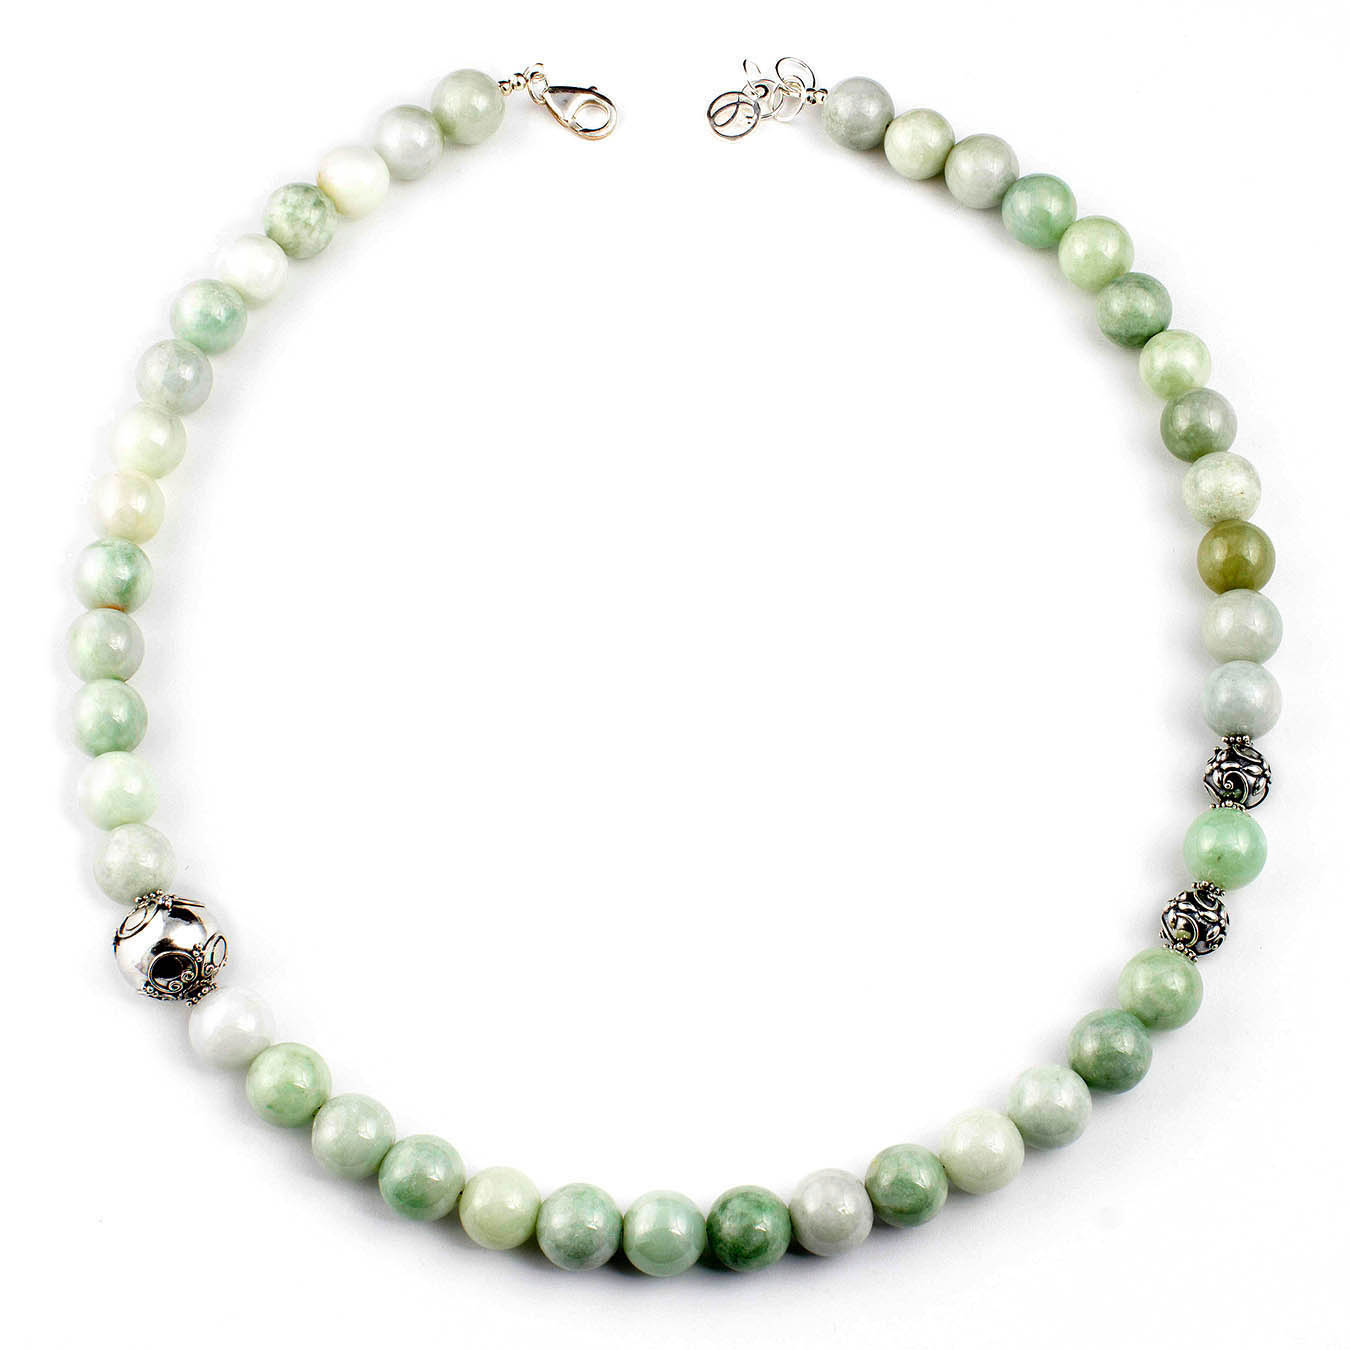 Handcrafted necklace made with Burma Jade stones and Bali silver